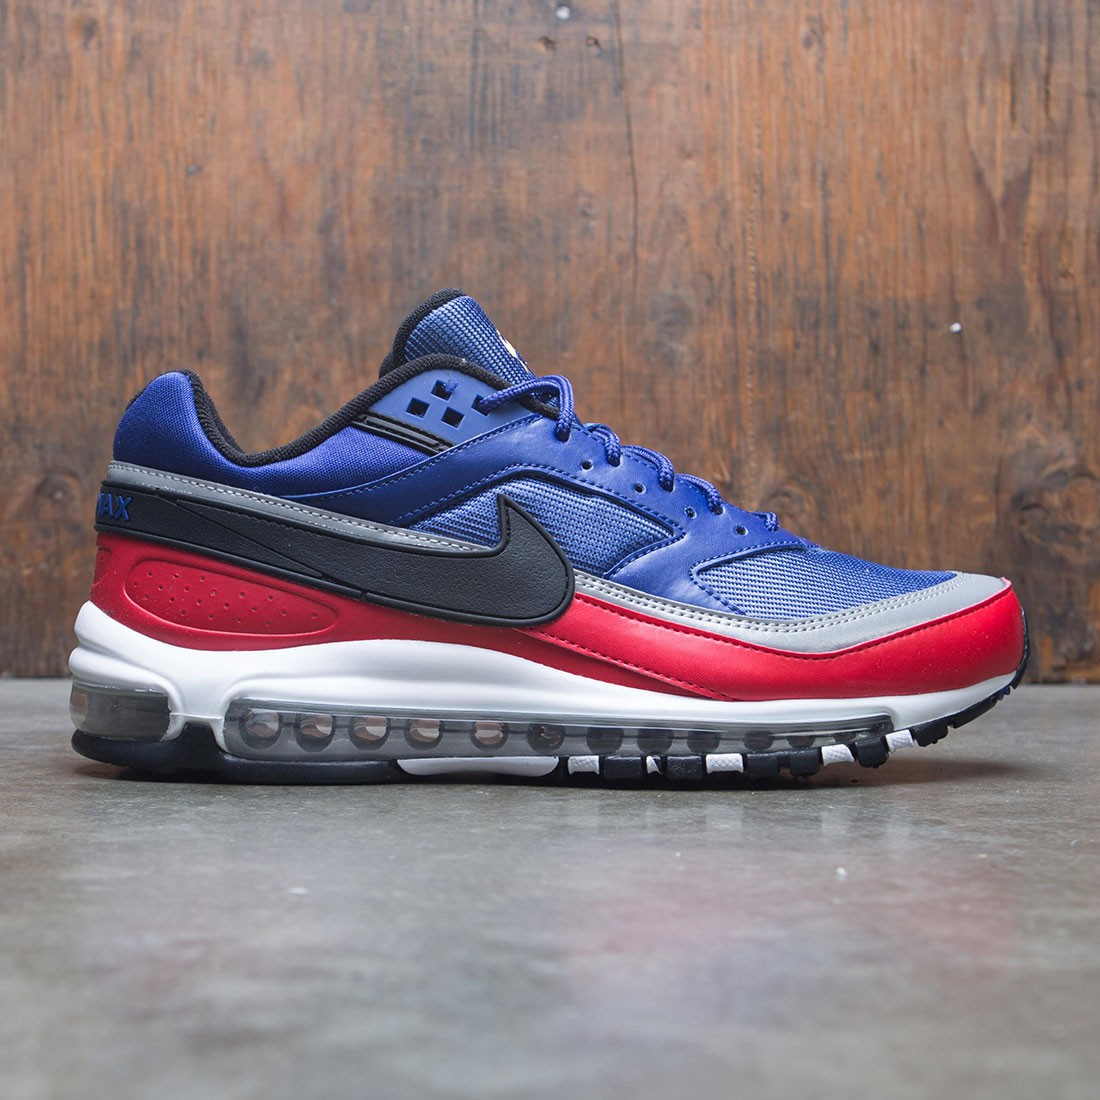 aebcfe68aa3 nike men air max 97 bw deep royal blue black university red